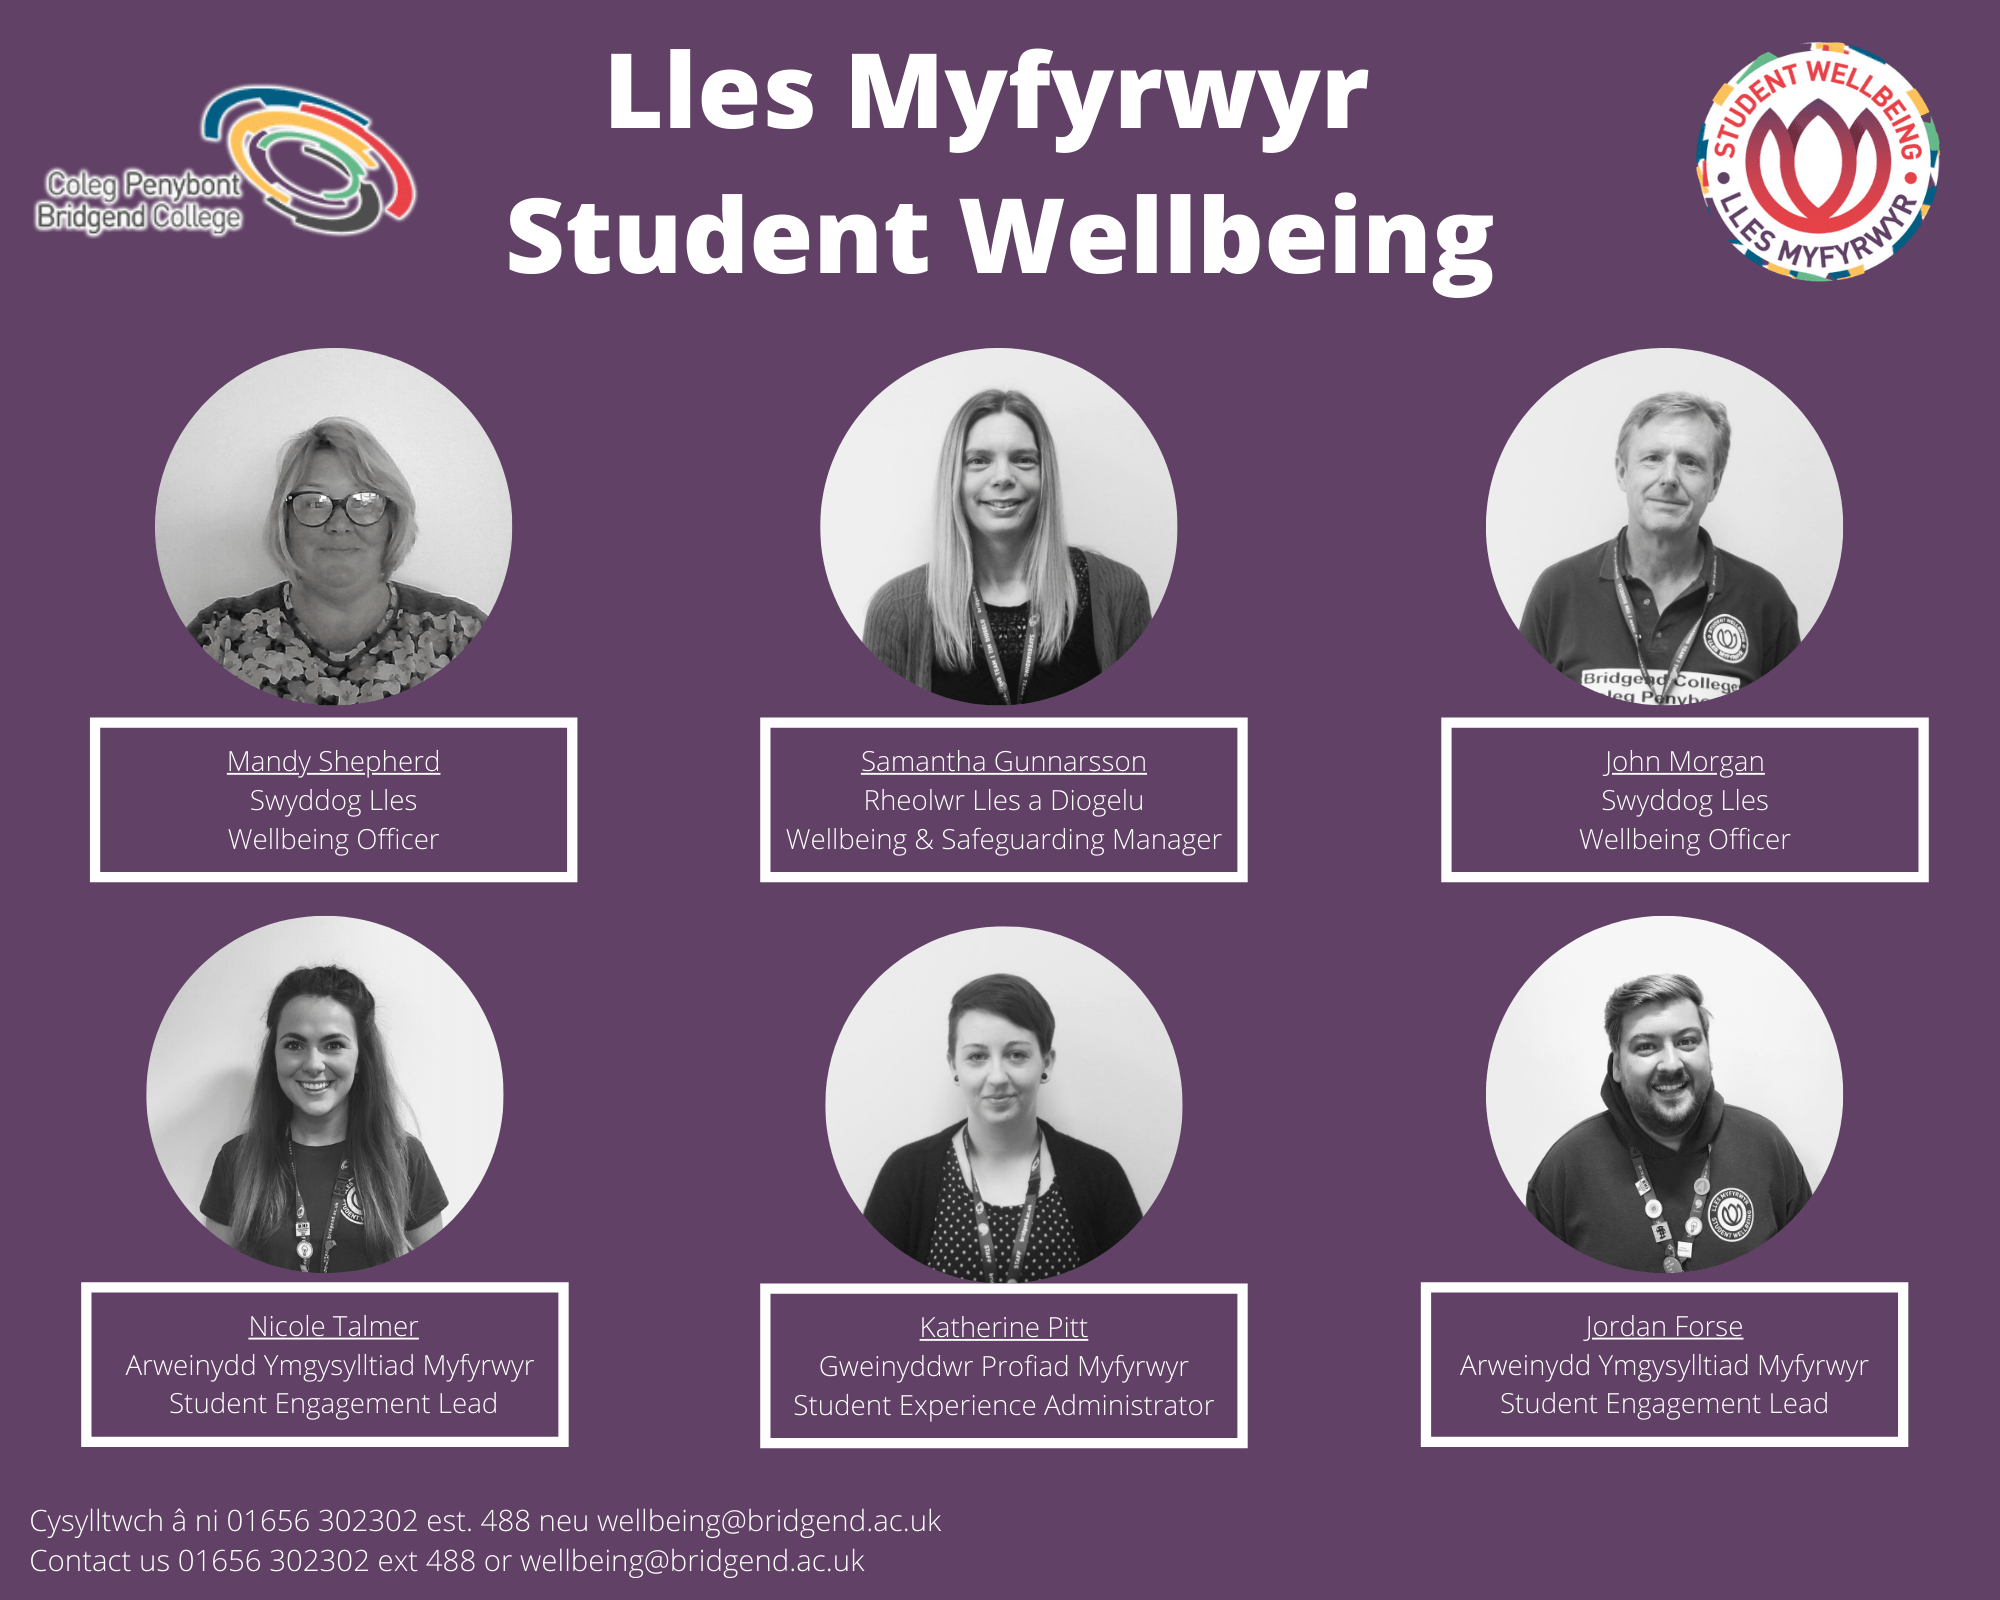 Members of the Student Wellbeing team